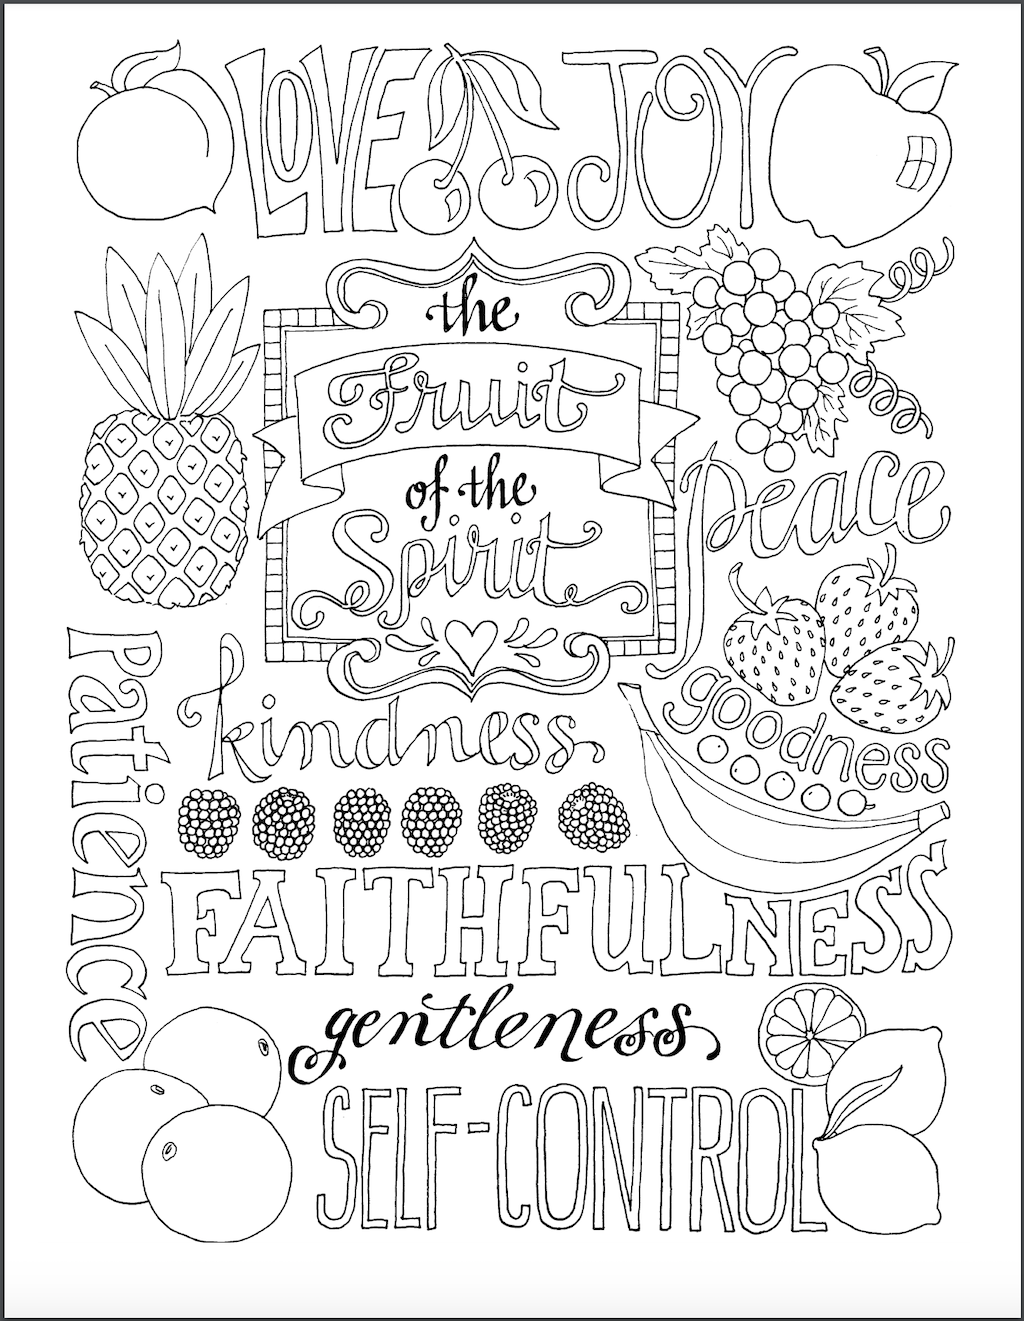 fruits of the spirit coloring pages fruit of the spirit colouring page from eh kids eastern of coloring the spirit pages fruits